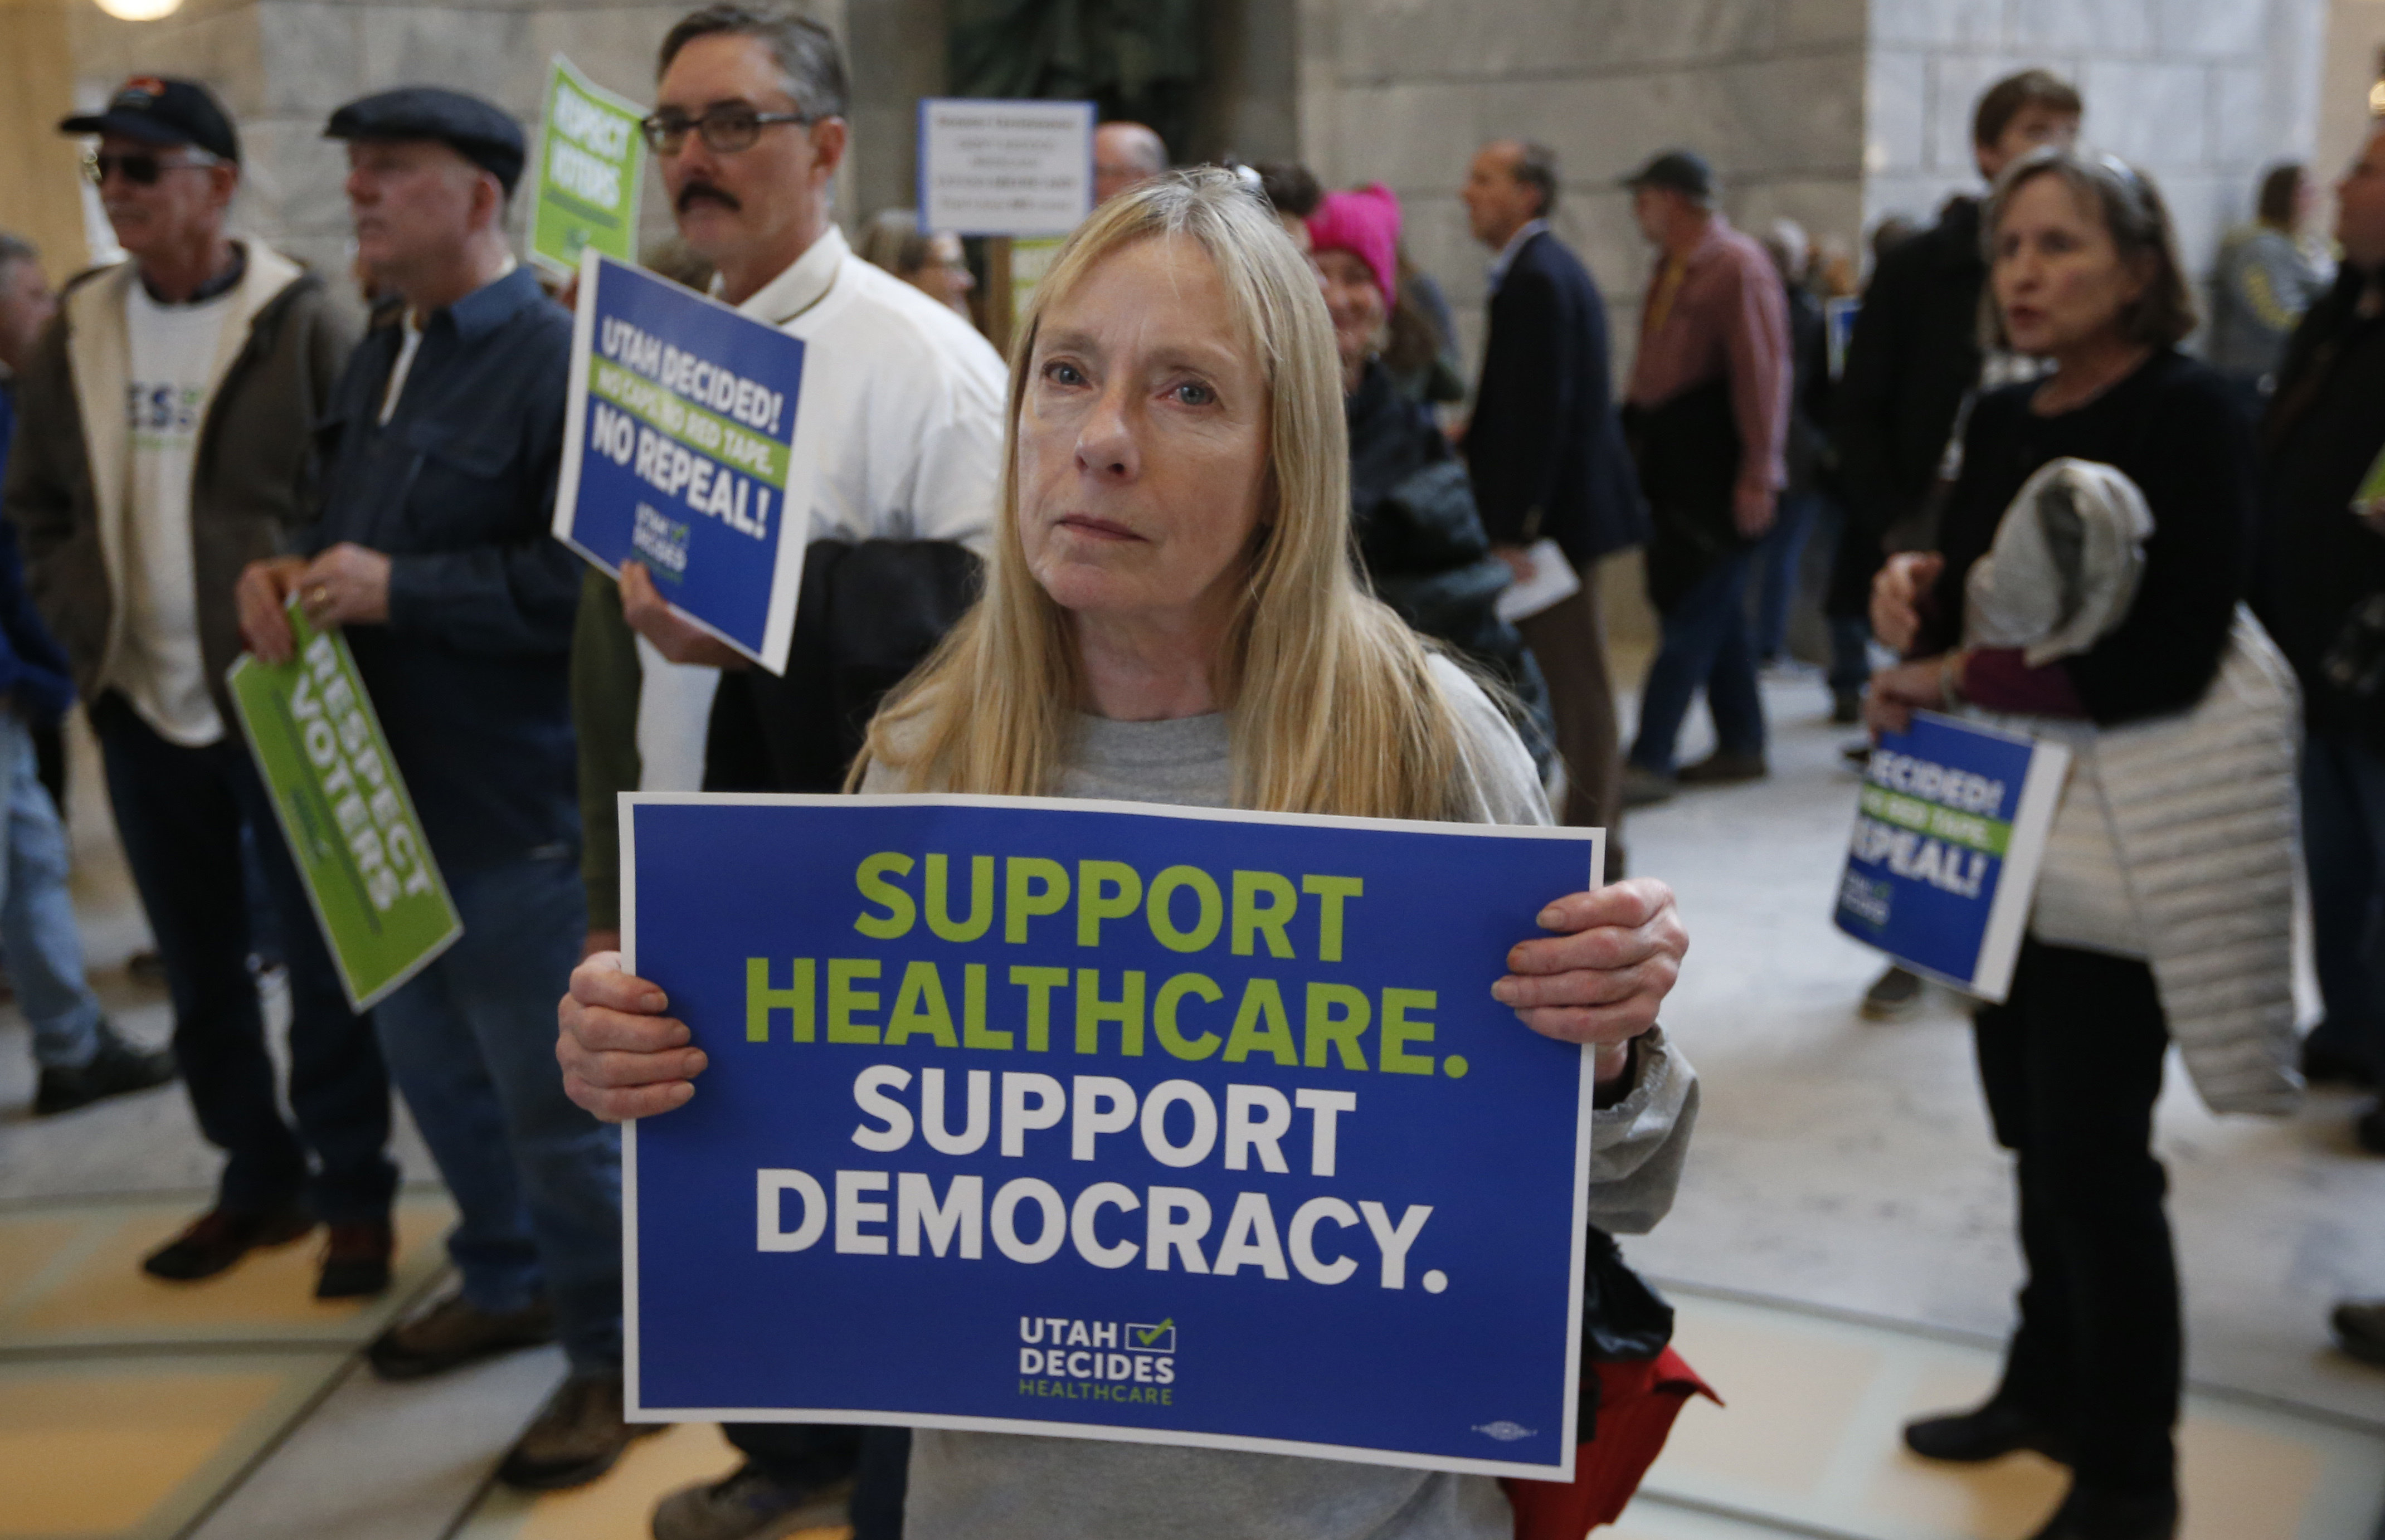 Bonnie Bowman, a supporter of a voter-approved measure to fully expand Medicaid, at a protest at the Utah Capitol in Salt Lak